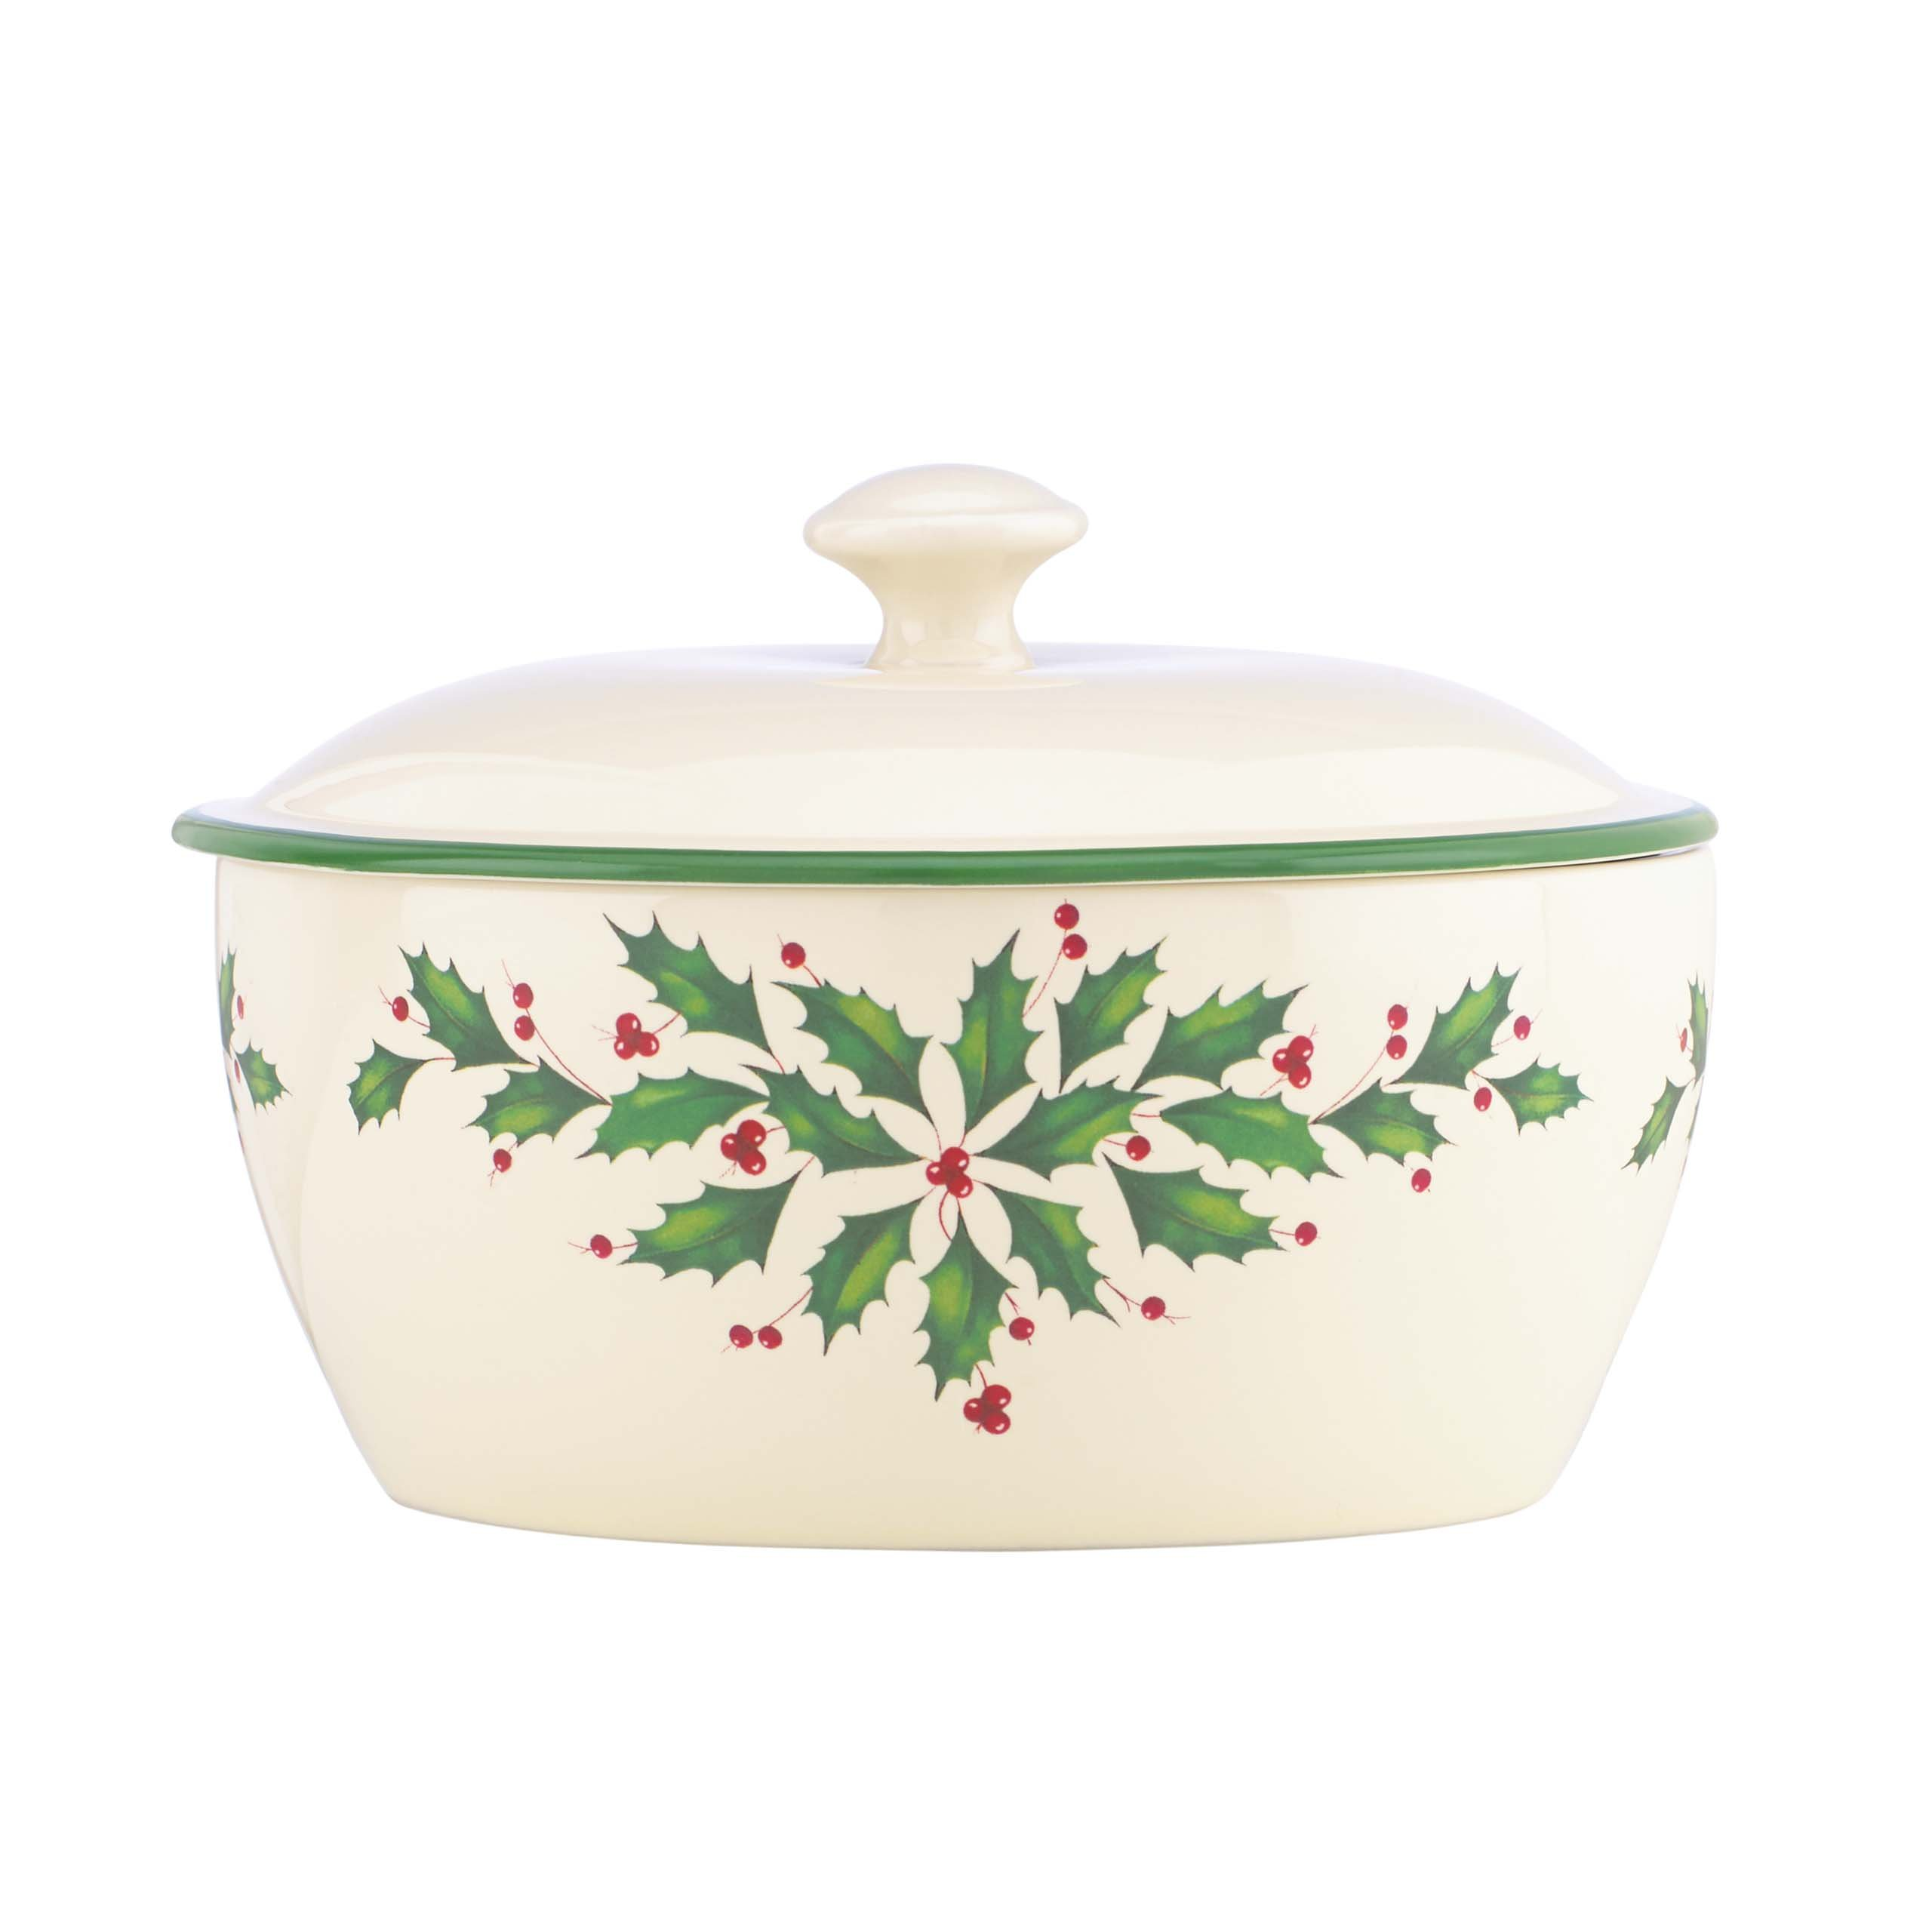 Lenox Holiday Covered Casserole by Lenox